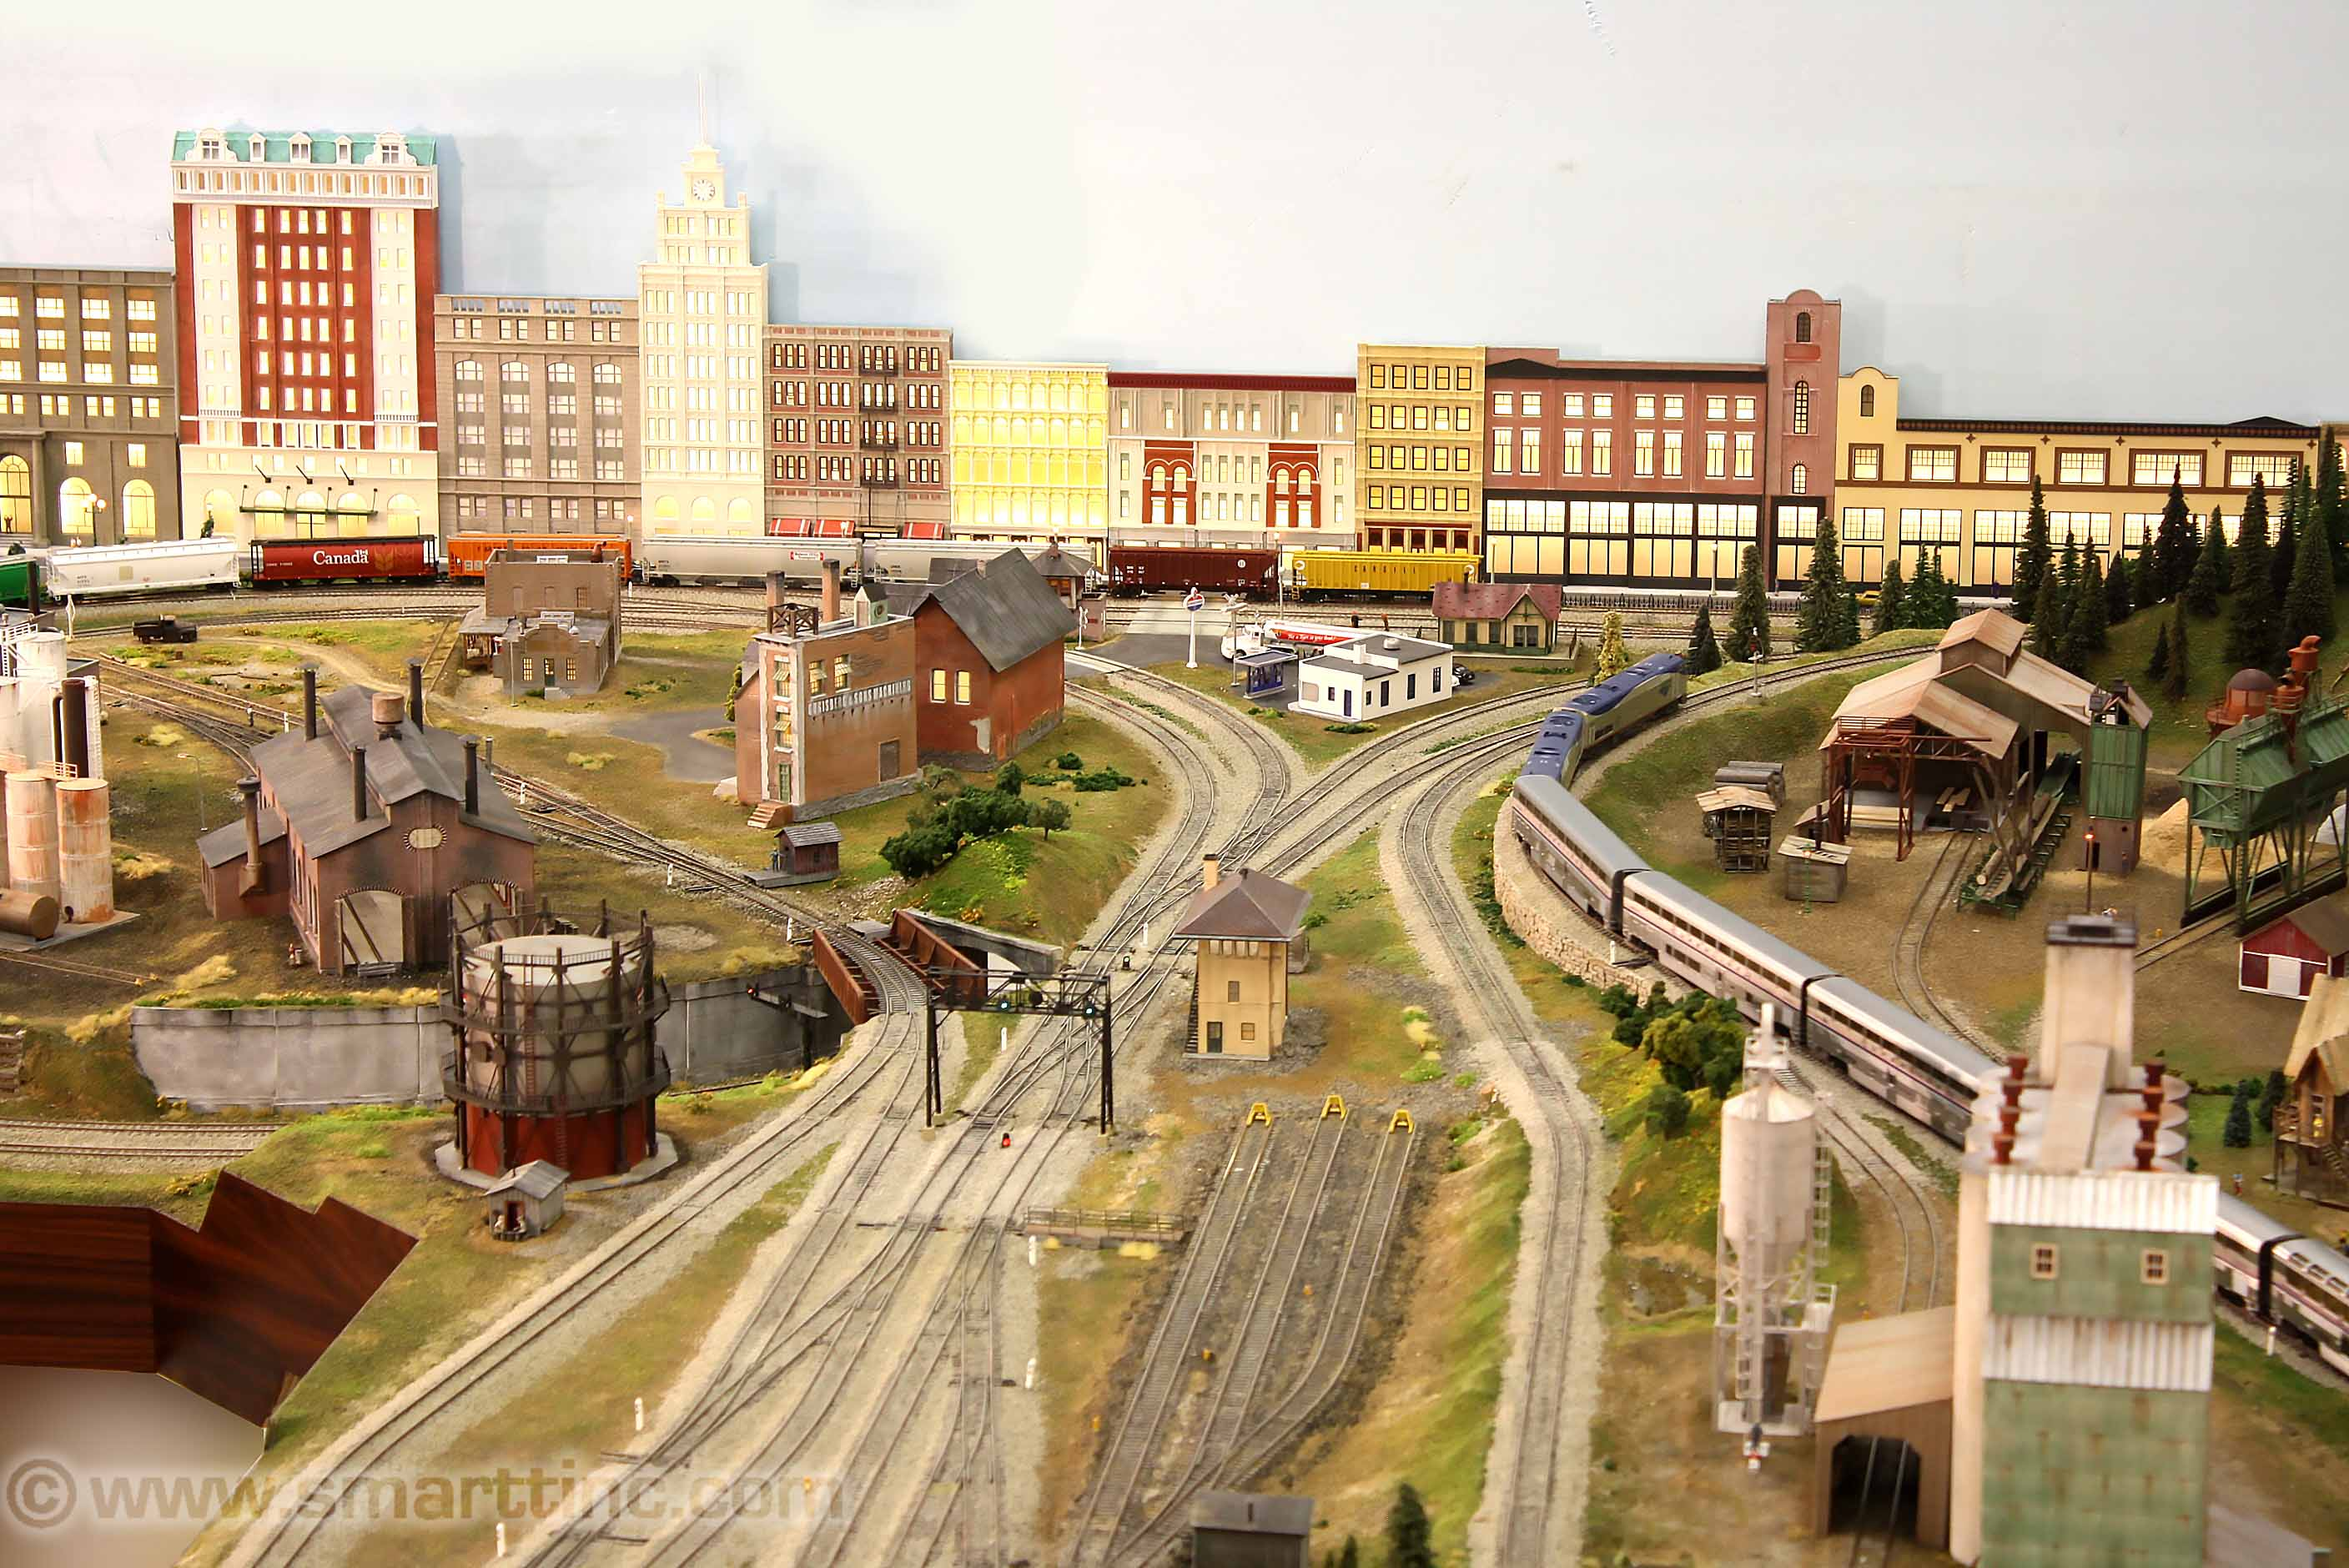 ho scale 12 ft x 19 ft el layout